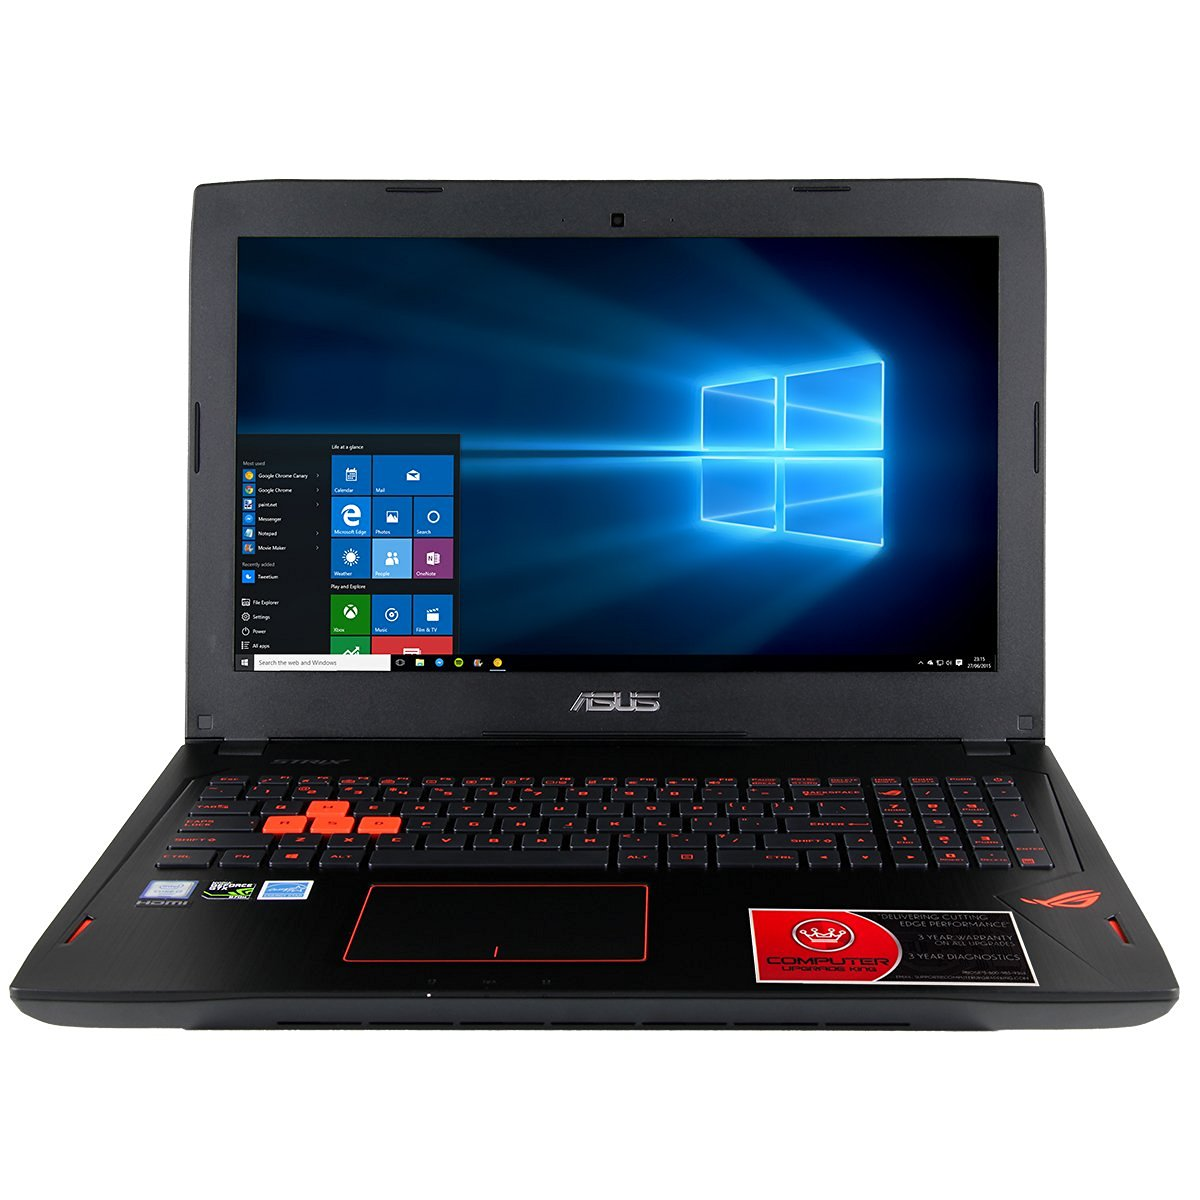 ASUS ROG GL502VS gaming laptop review